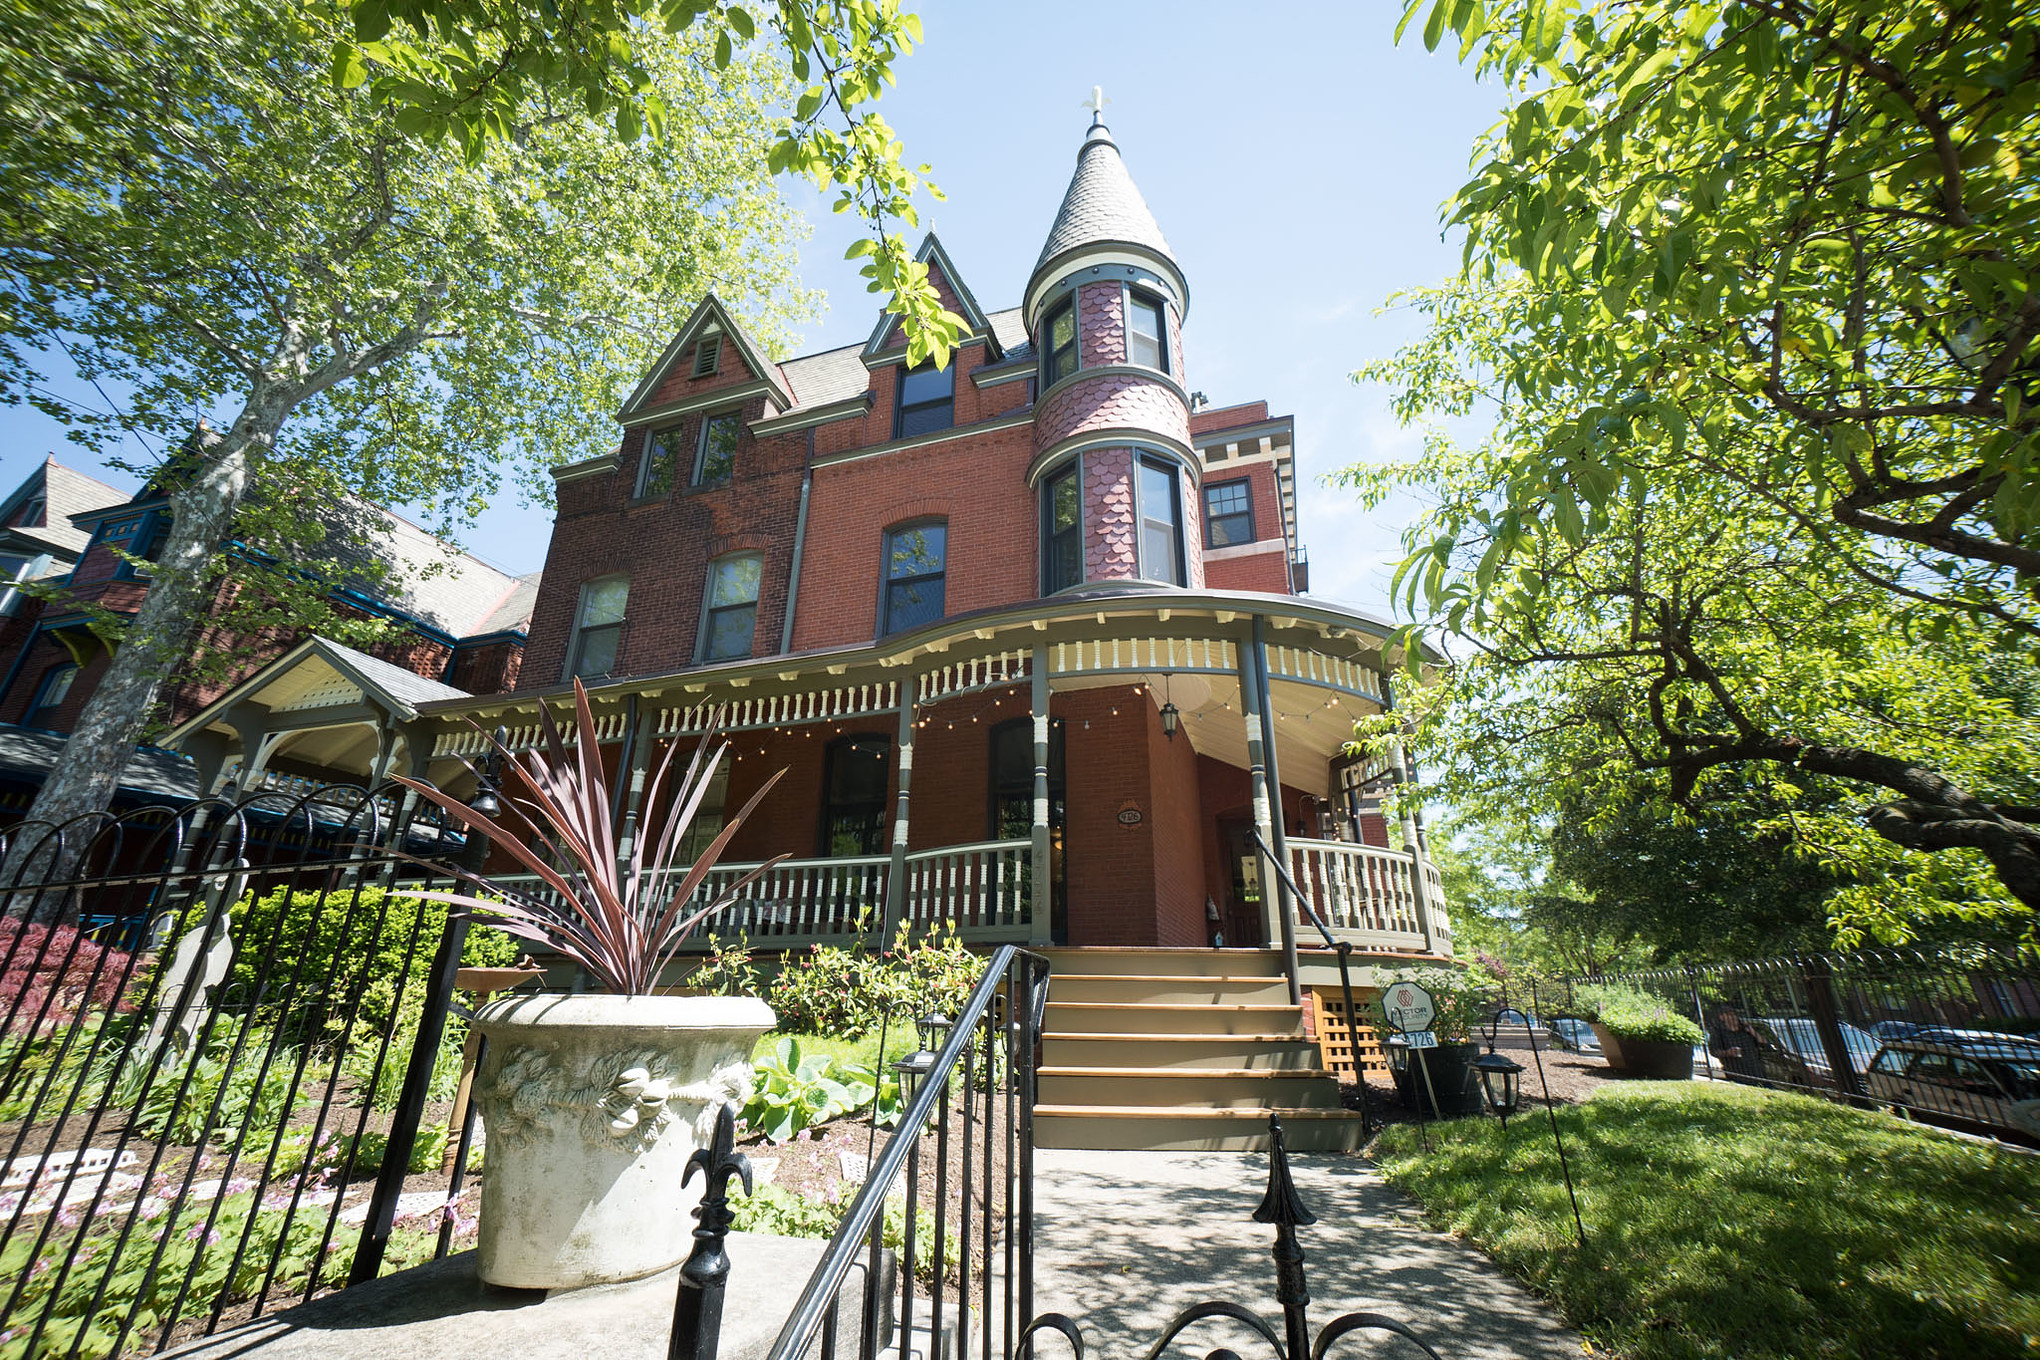 A Queen Anne Victorian with a wrap-around porch in West Philly.